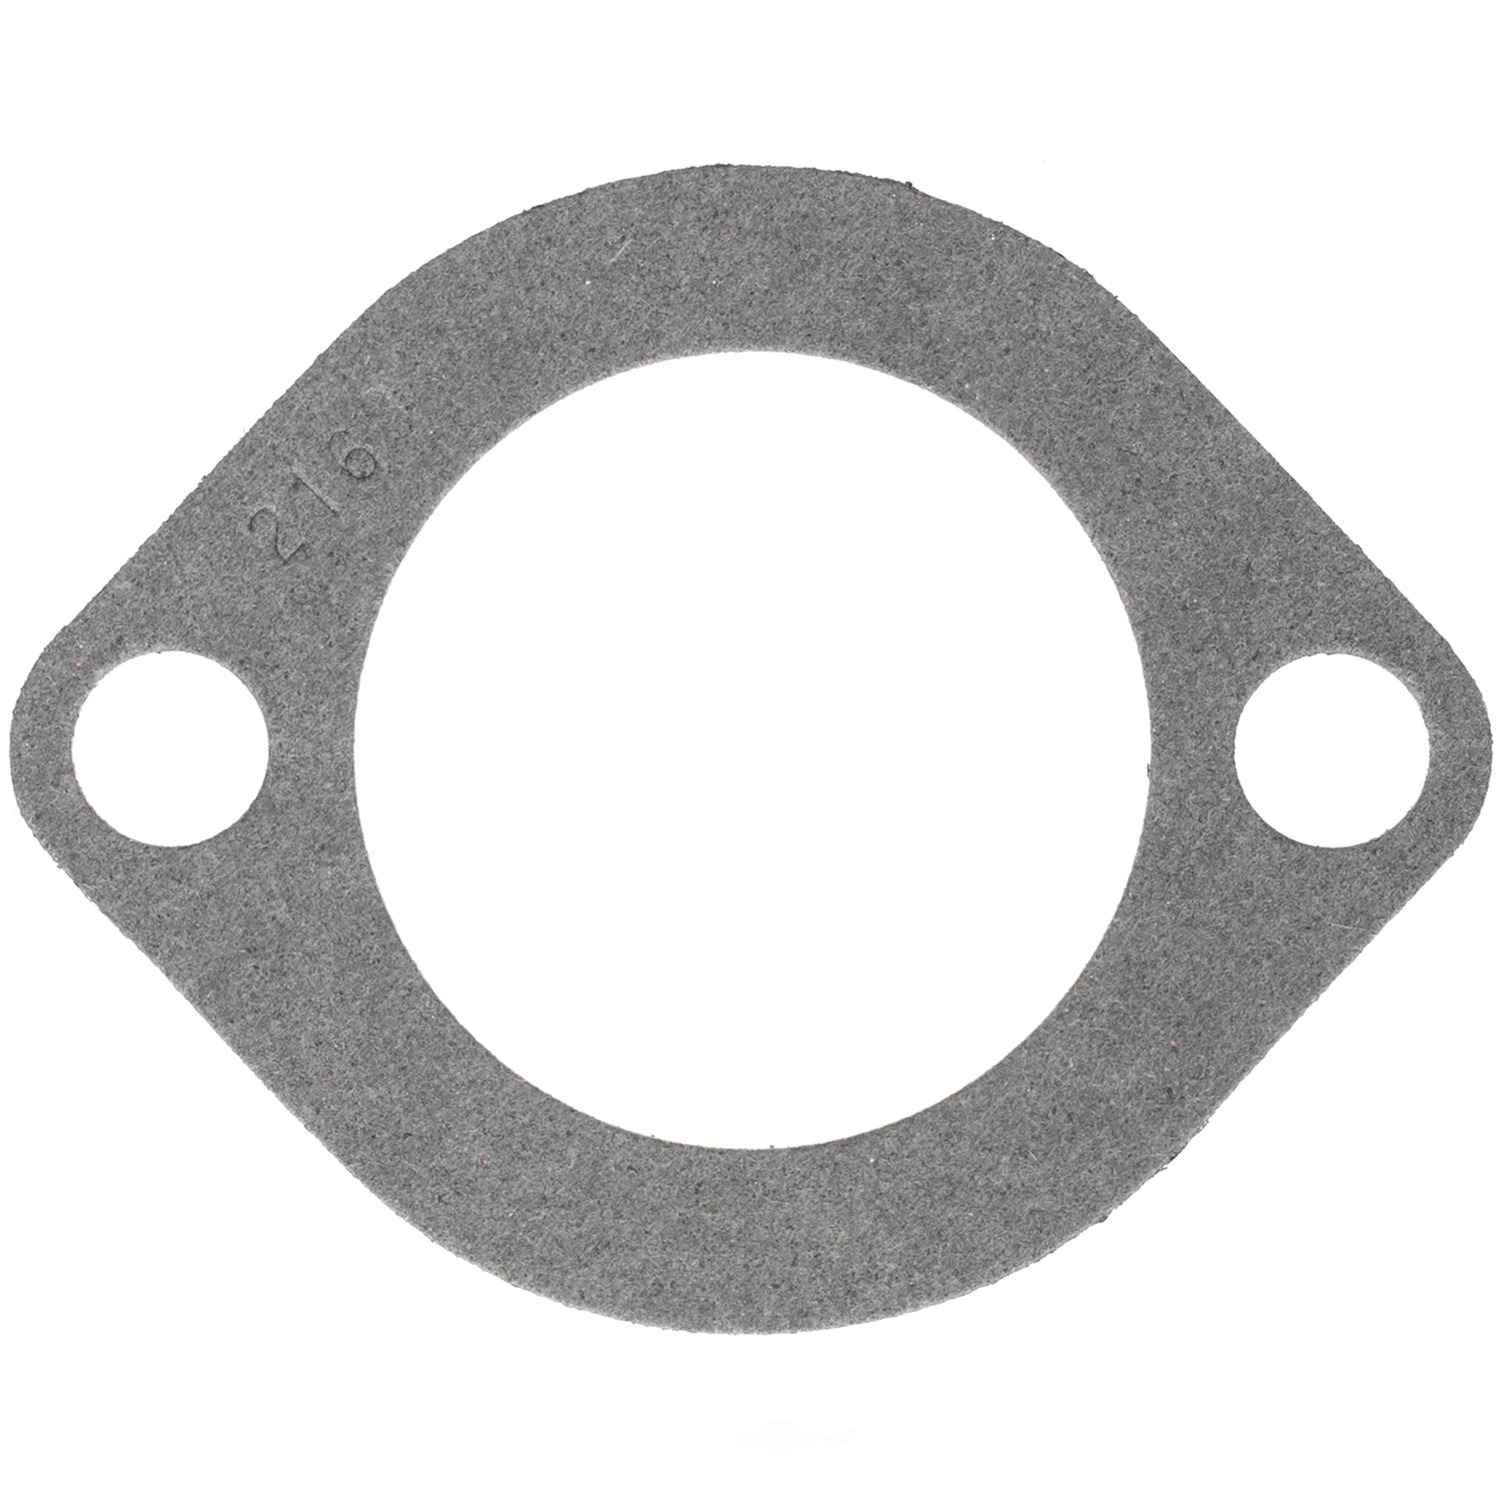 STANT - Thermostat Gasket(1 Pack) - STN 27168